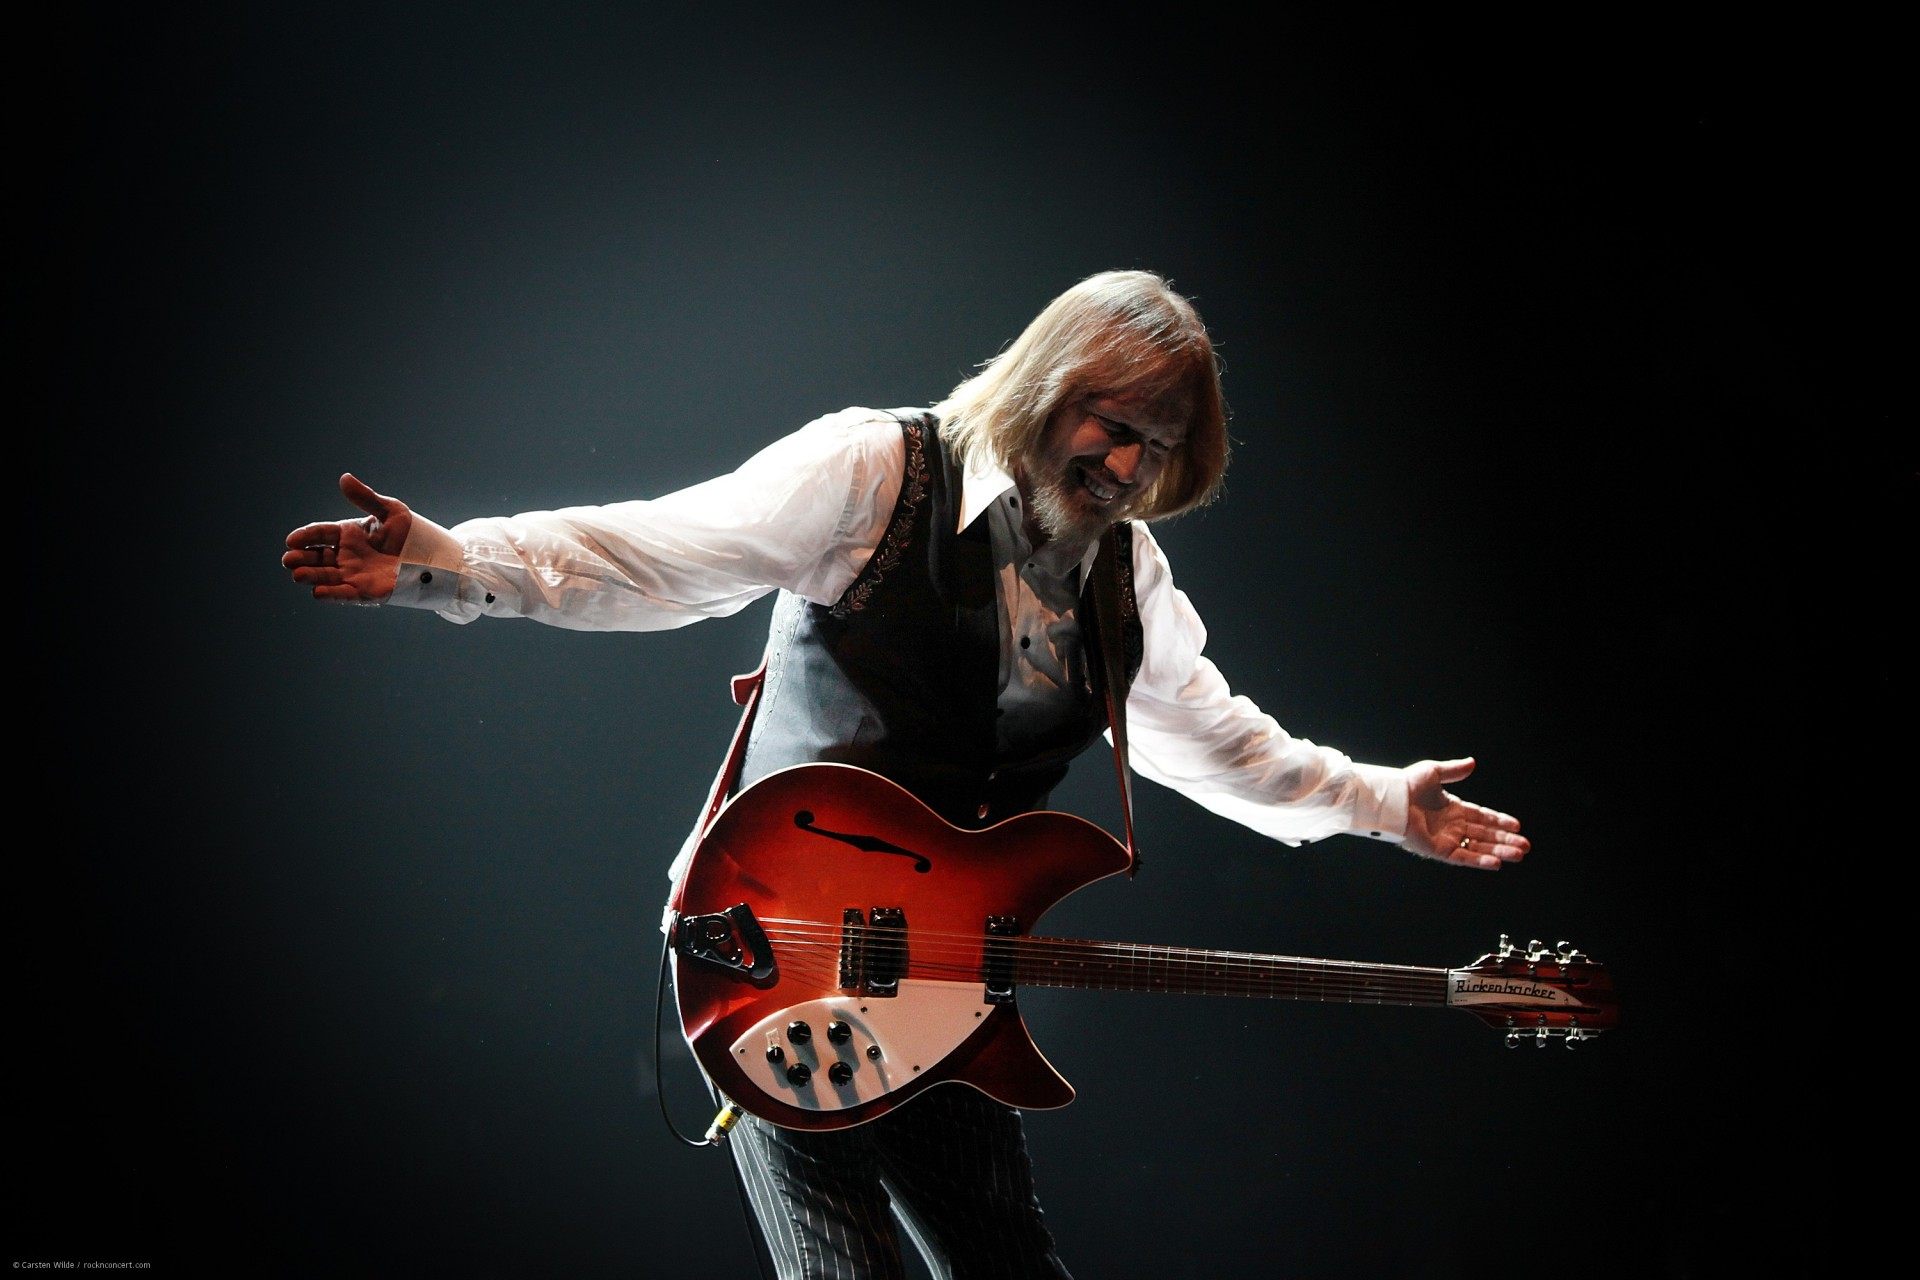 Tom Petty - ein Legende